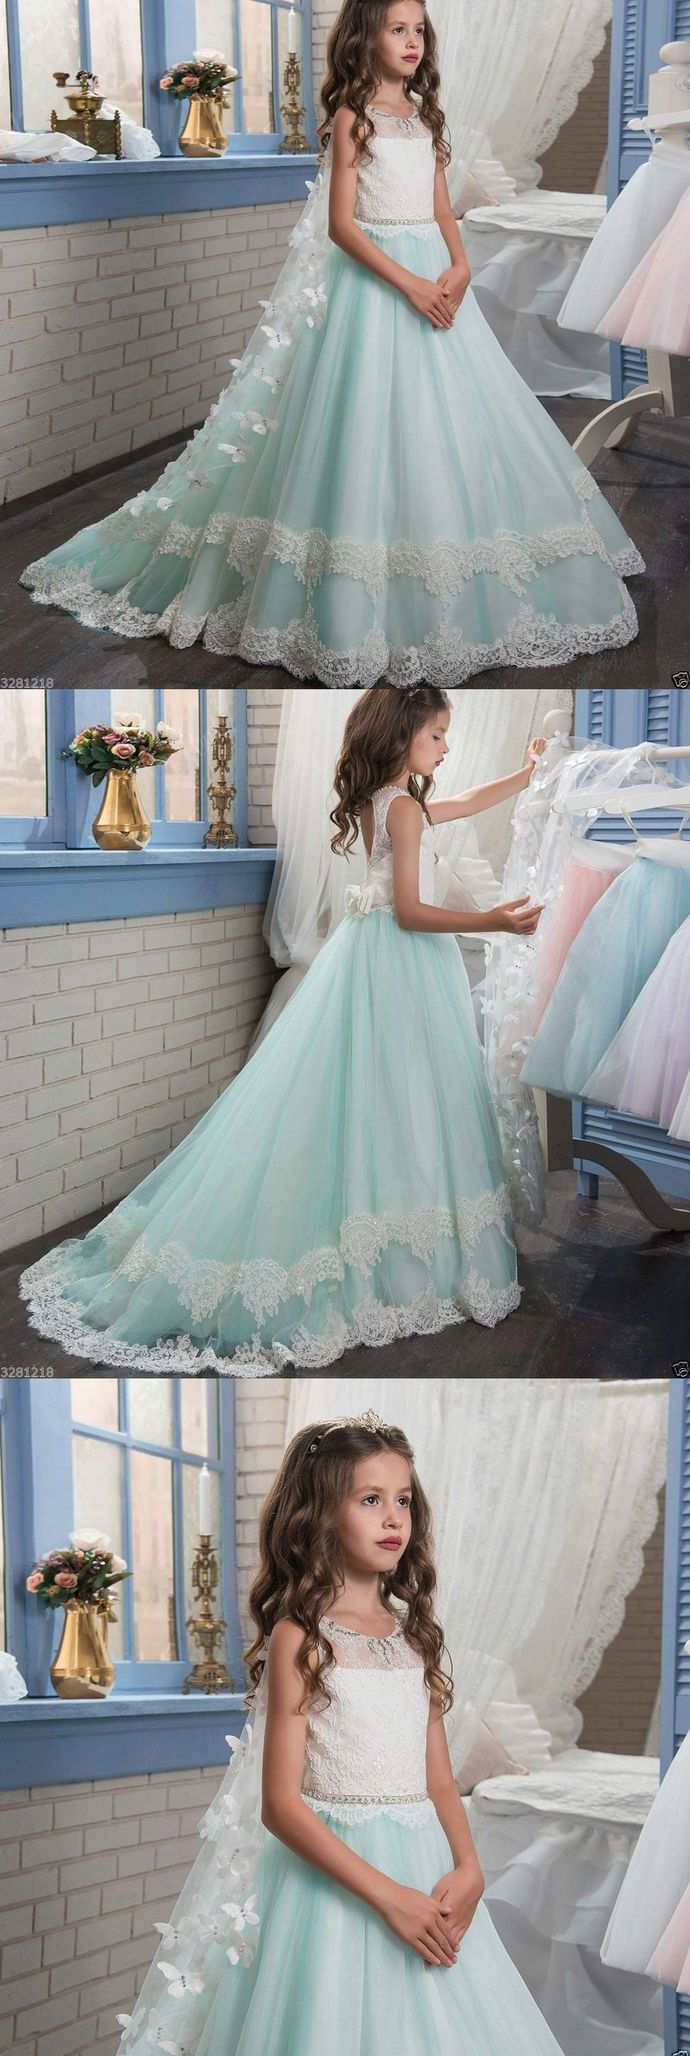 Blue flower girl dresses princess pageant first communion dresses